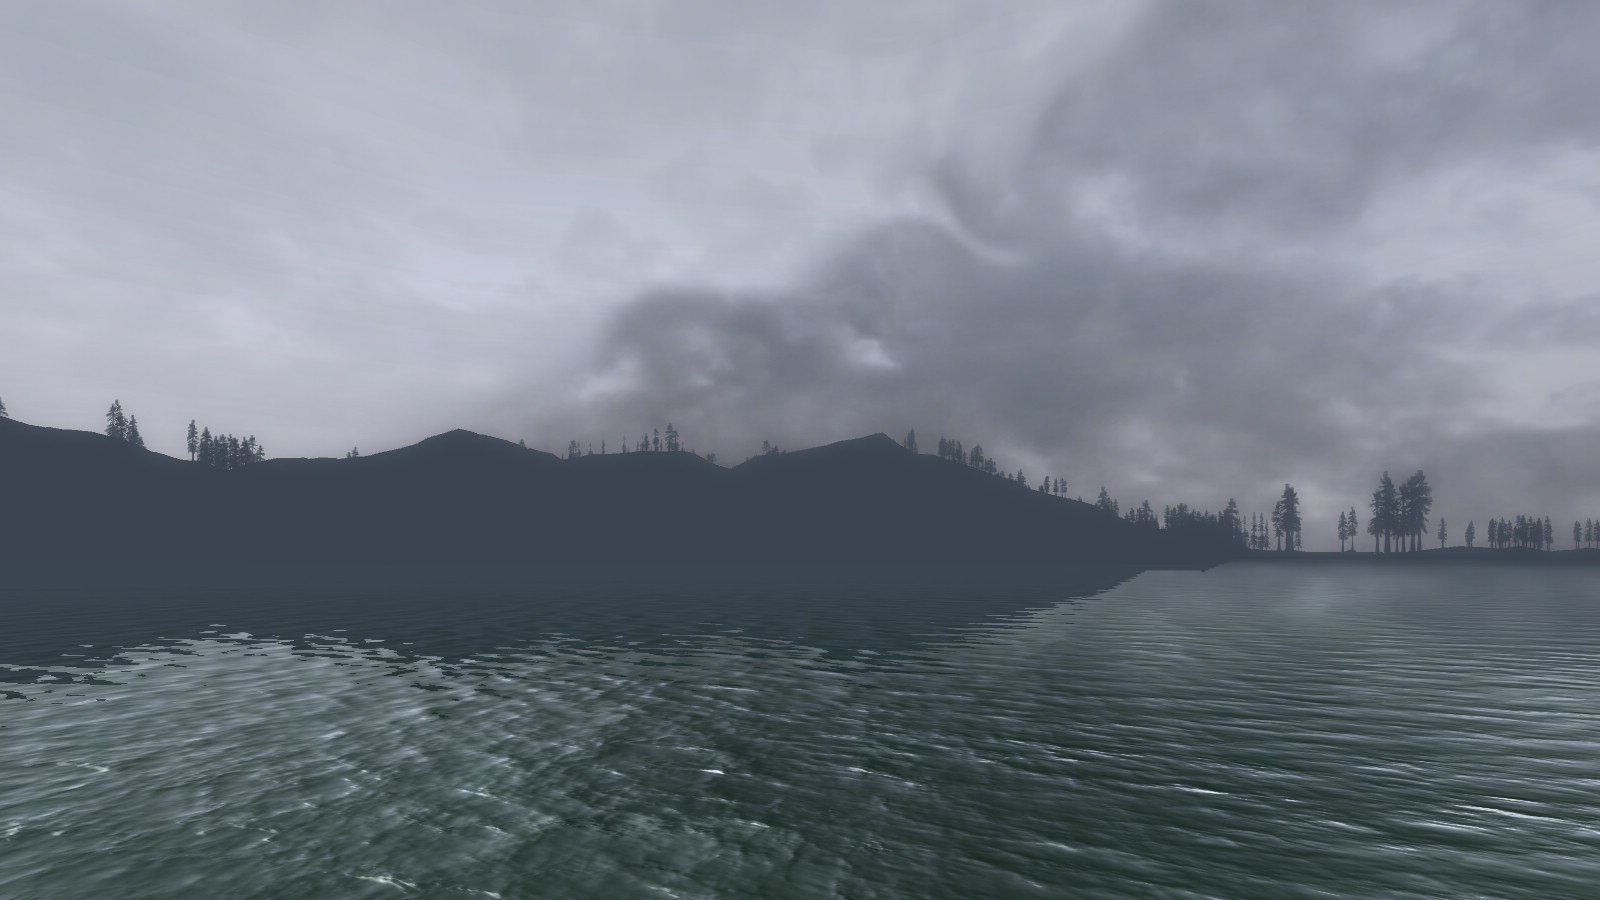 Lord of the Rings Online - Cloudy morning in Evendim